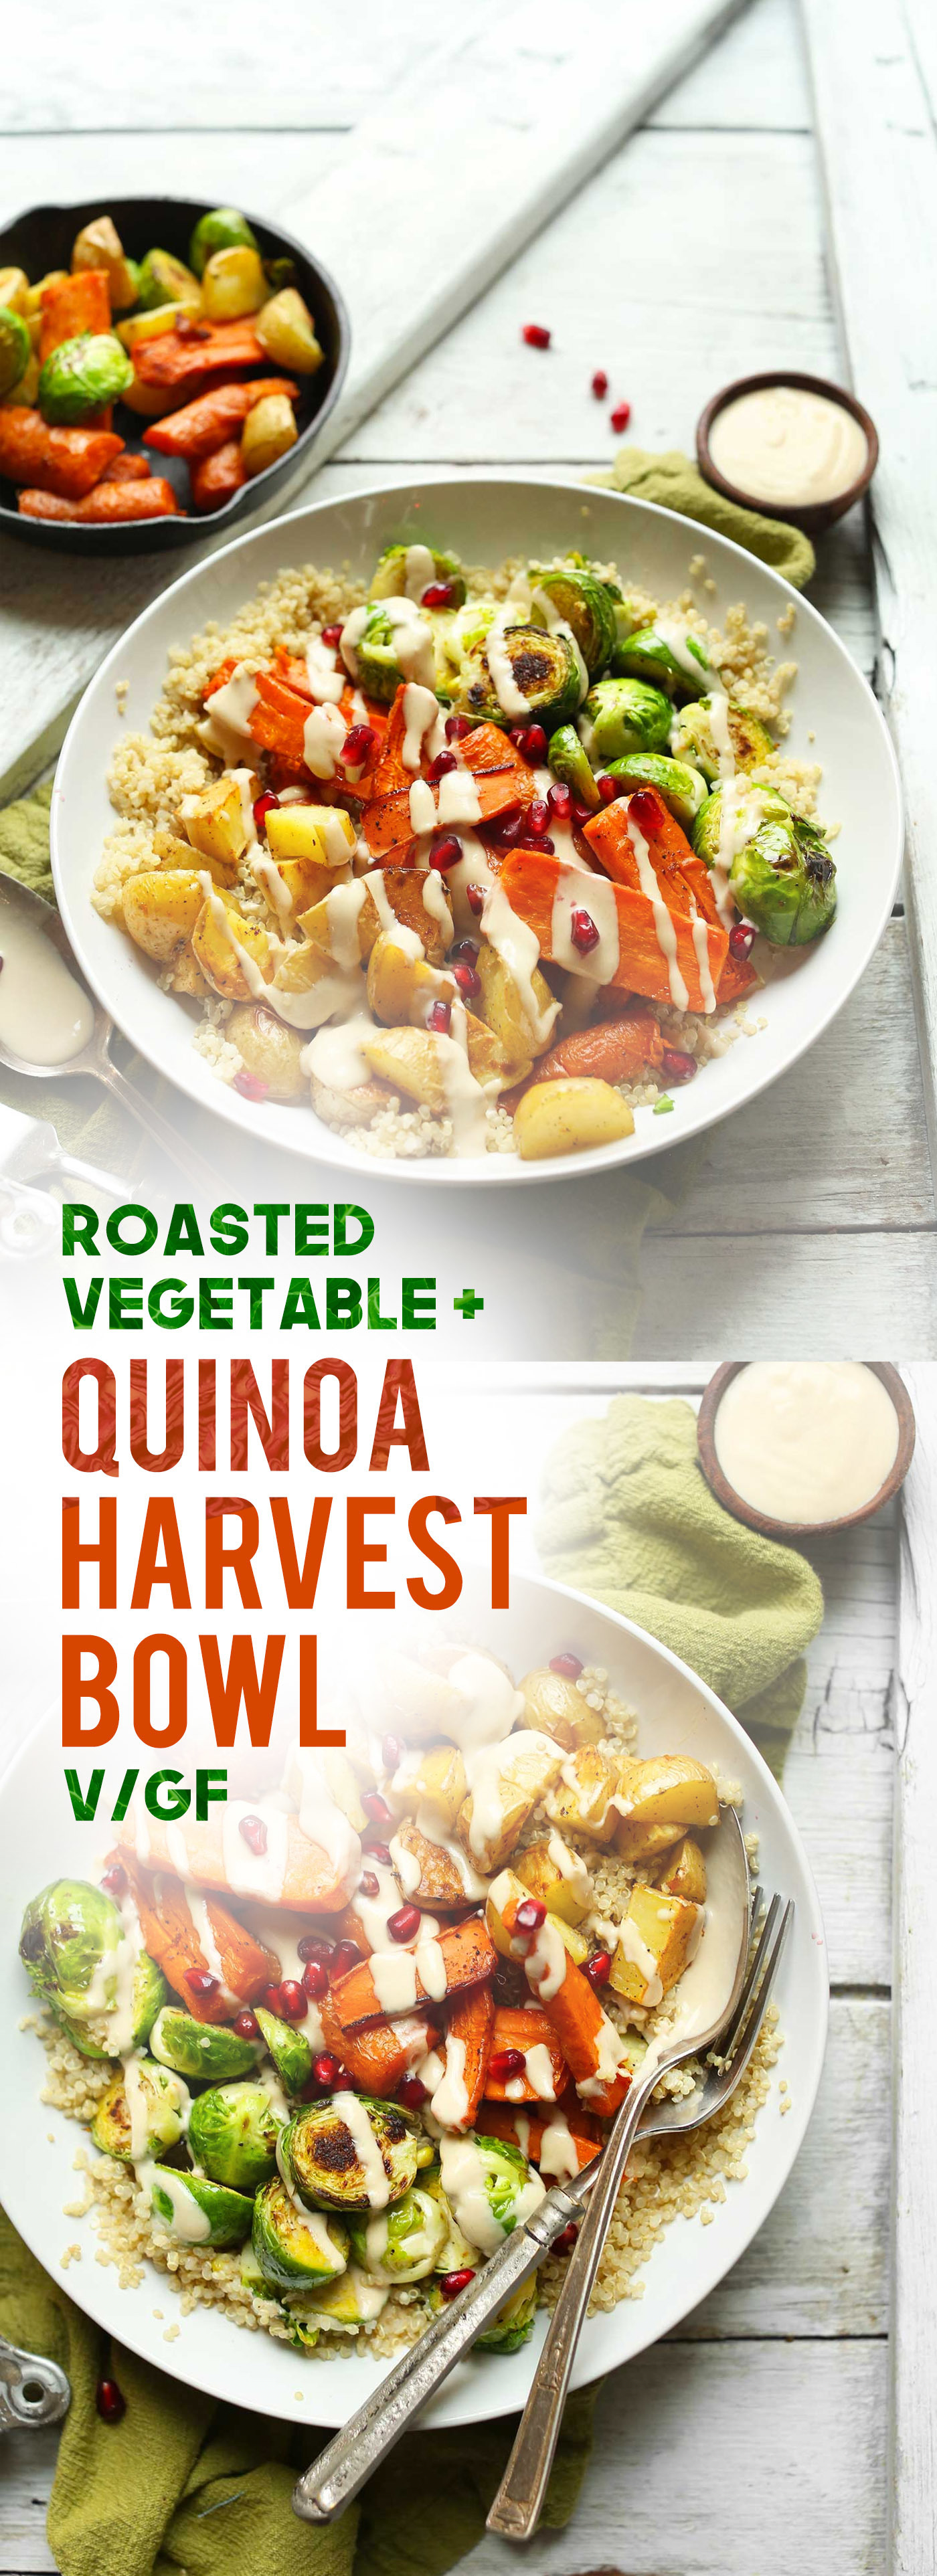 Roasted Vegetable & Quinoa Harvest Bowls